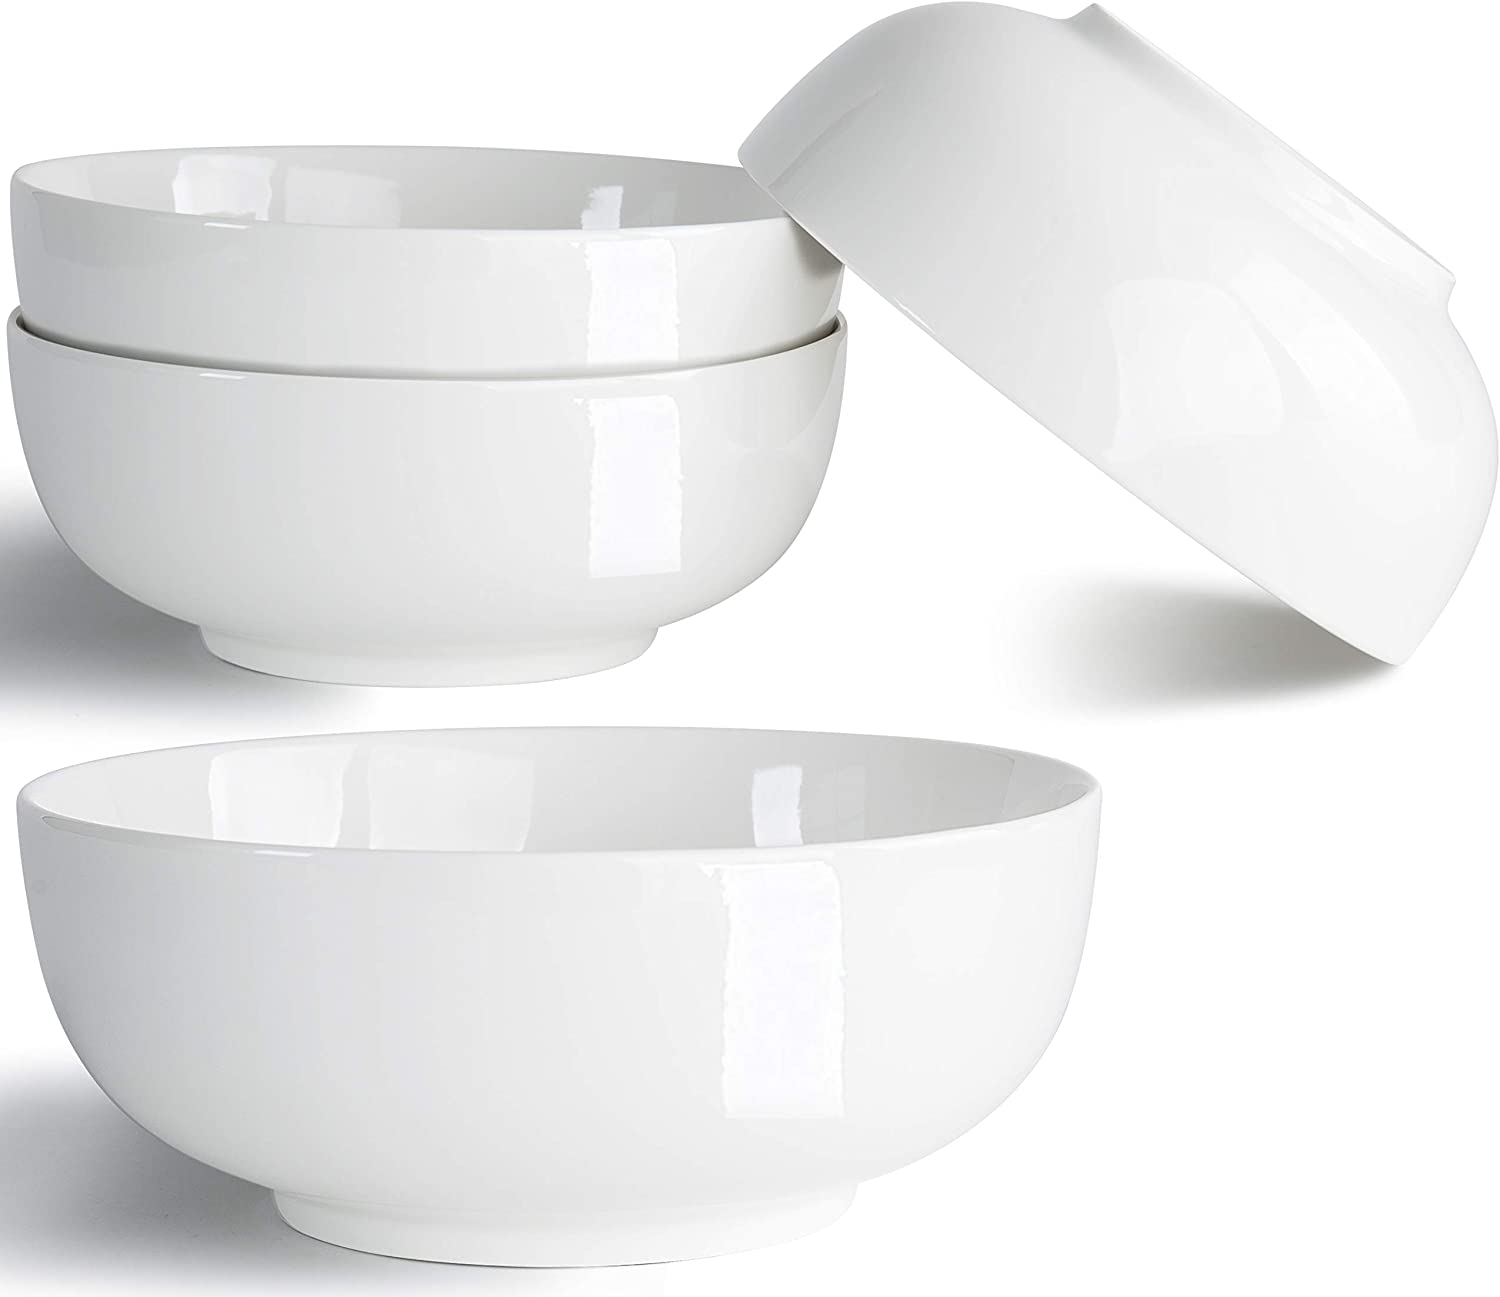 specialty shop 40 Ounces Attention brand Soup Bowls Salad Pasta Cereal Ph